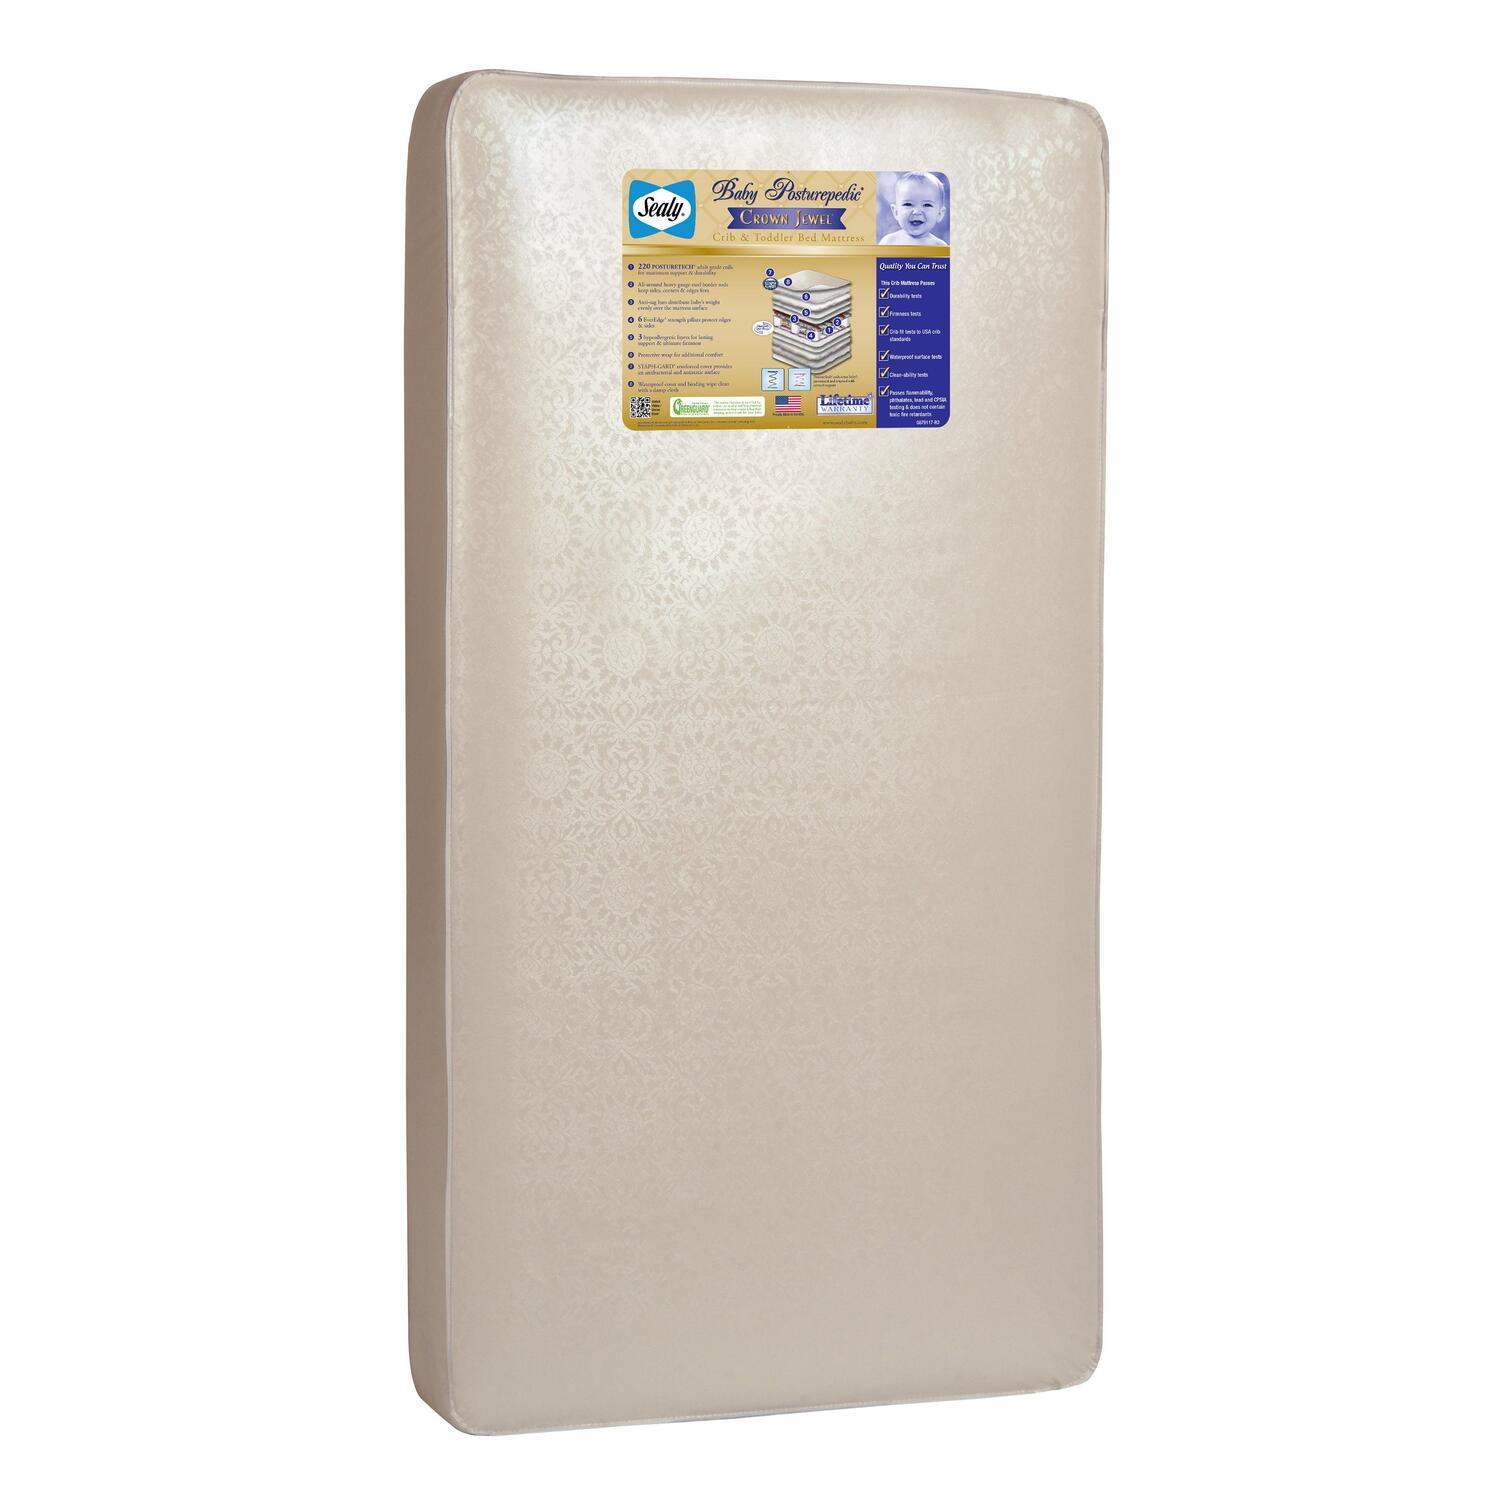 Sealy Sealy Baby Posturepedic Crown Jewel Crib Mattress by